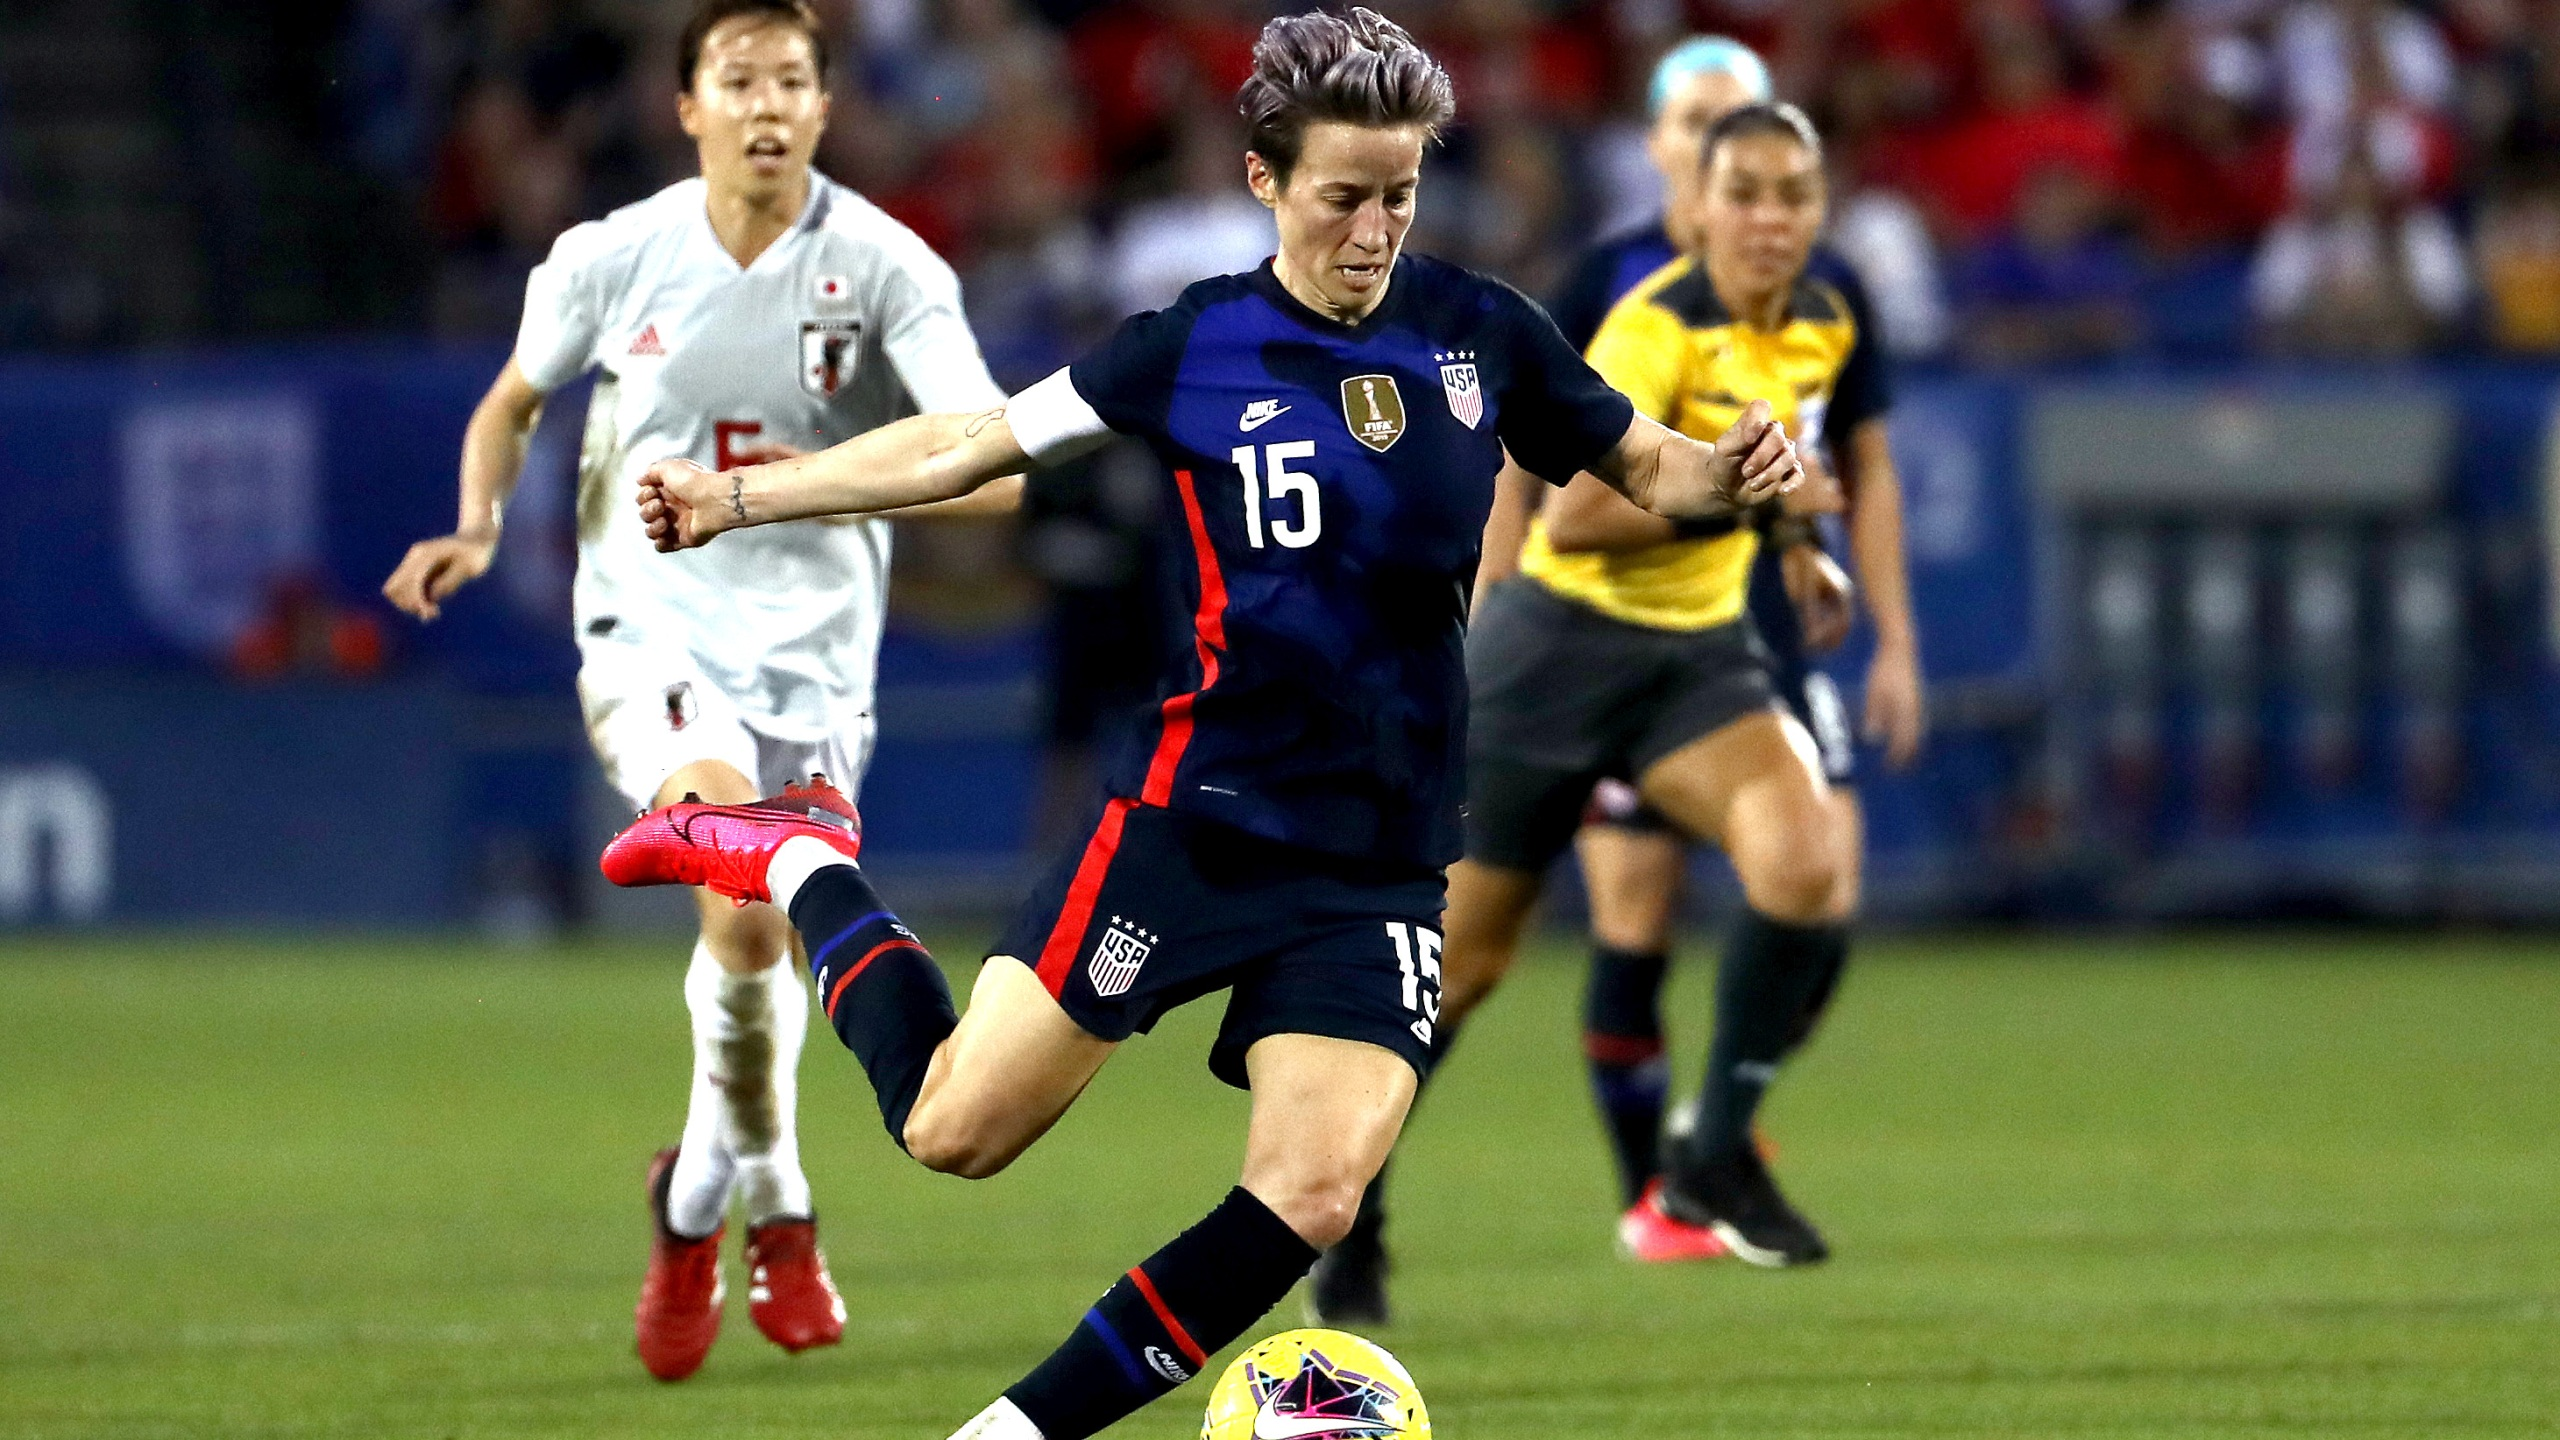 Megan Rapinoe #15 of the United States controls the ball against Japan during the first half of the 2020 SheBelieves Cup at Toyota Stadium on March 11, 2020 in Frisco, Texas. (Ronald Martinez/Getty Images)